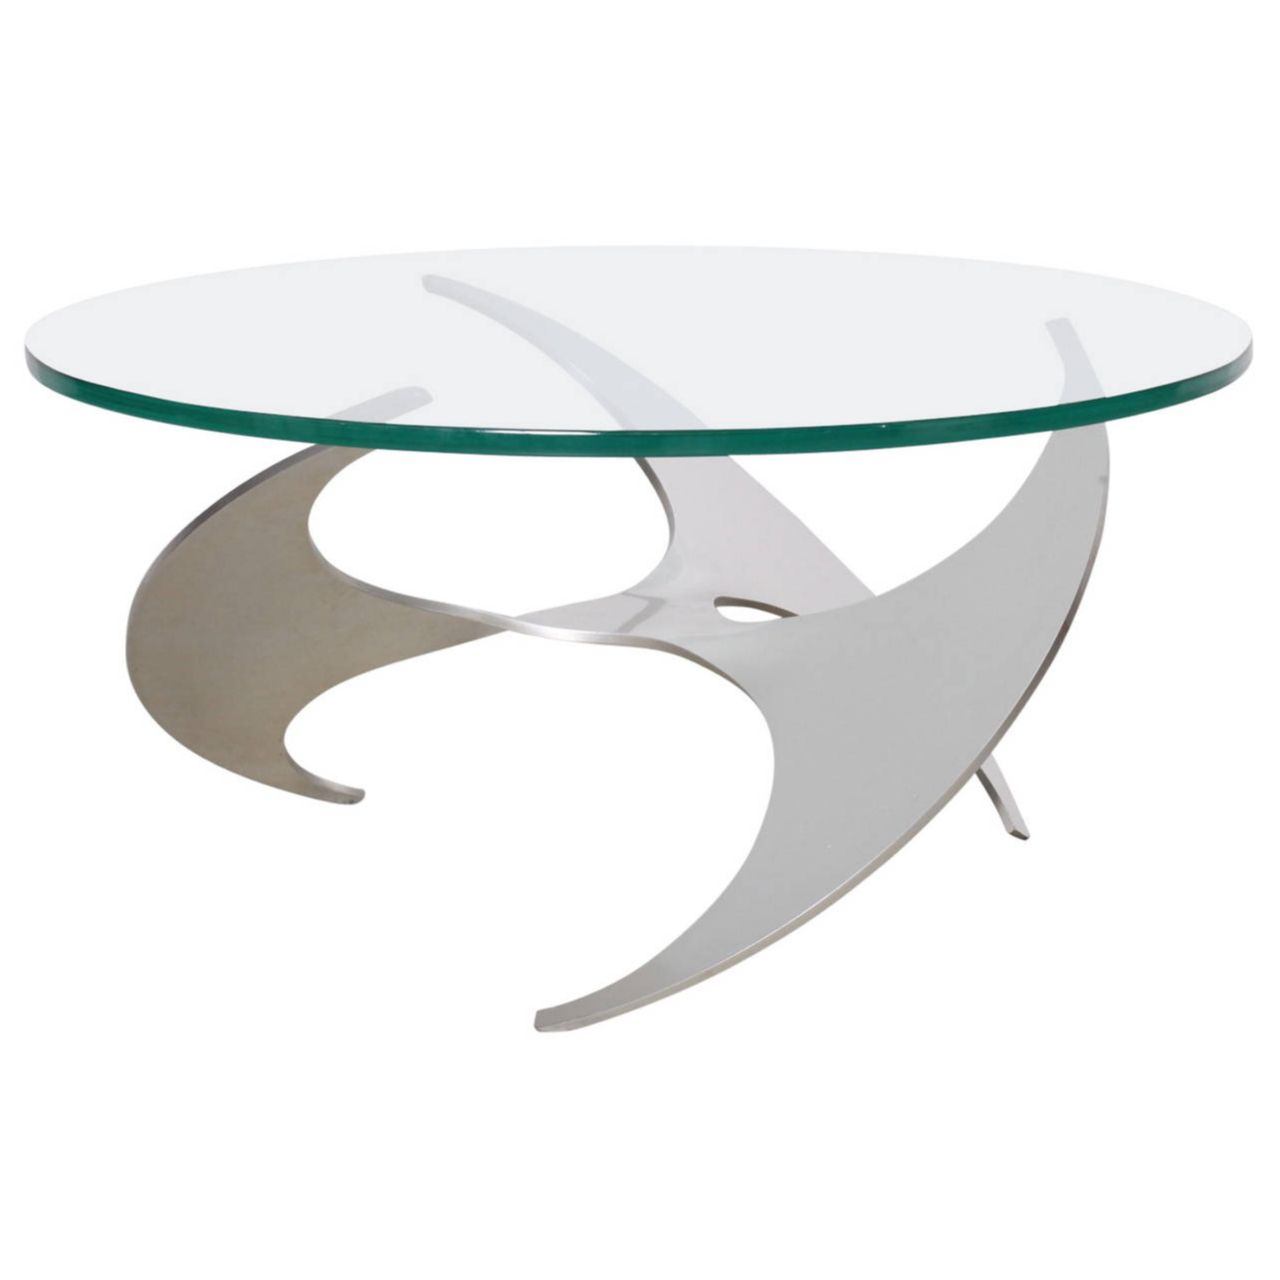 Aluminum And Glass Propeller Coffee Table By Knut Hesterberg